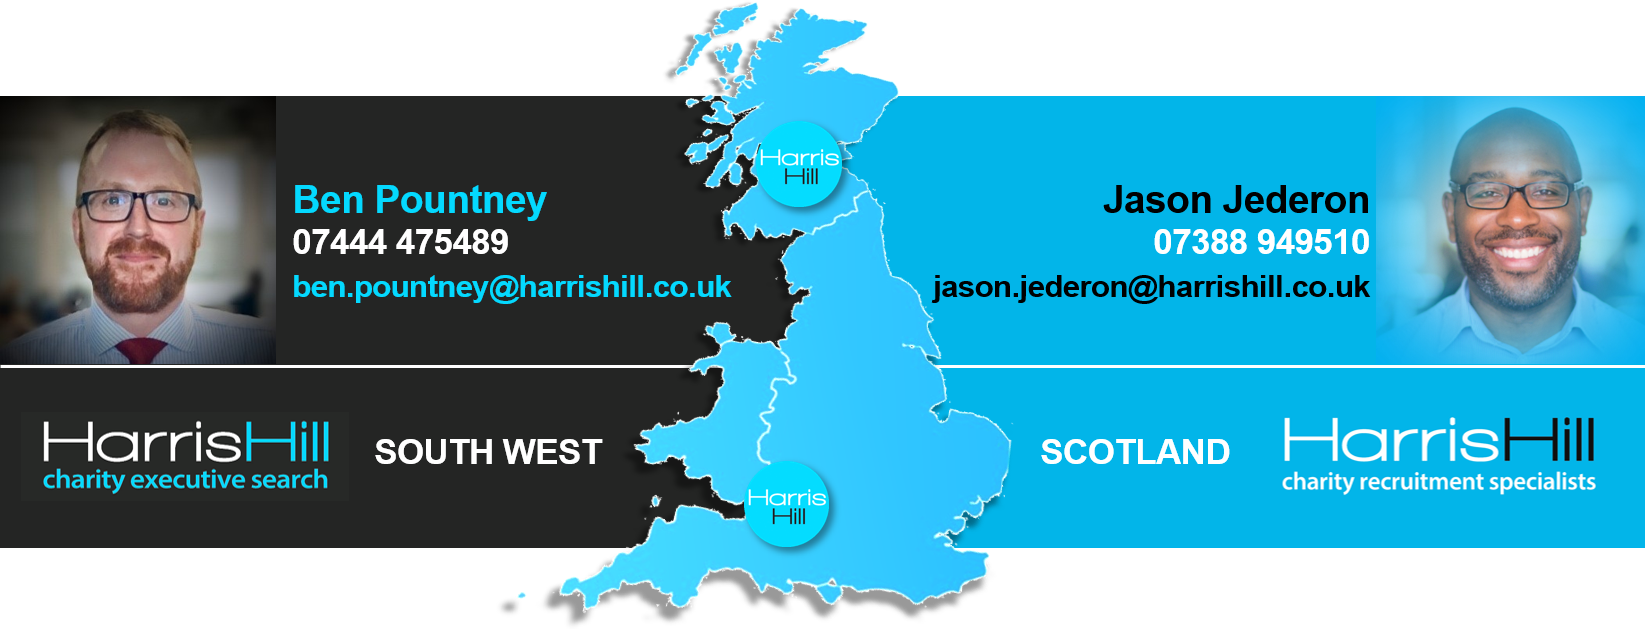 Harris Hill's charity recruitment specialists in Scotland and the South West